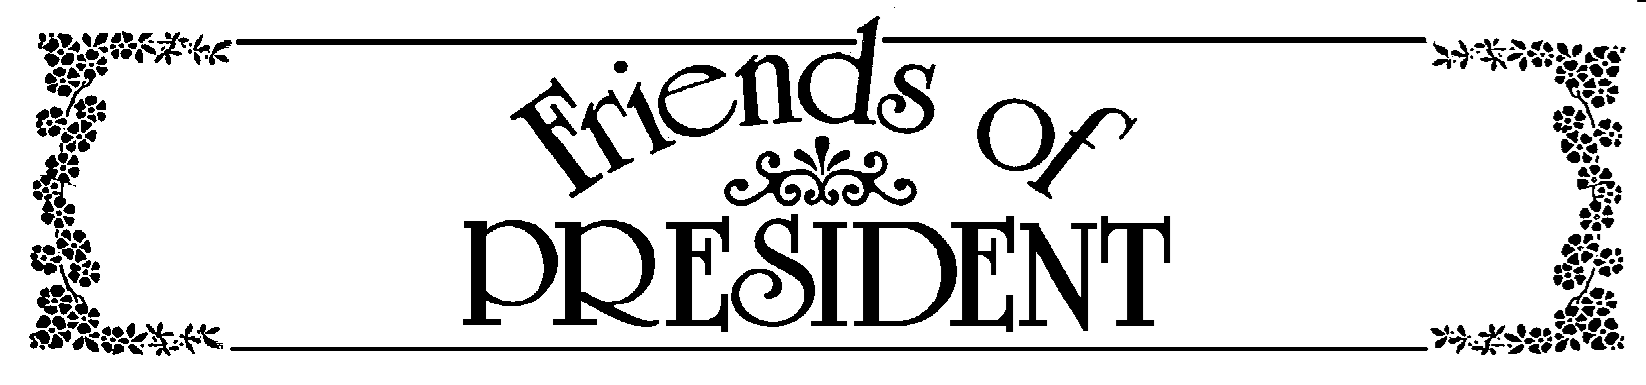 Friends of President